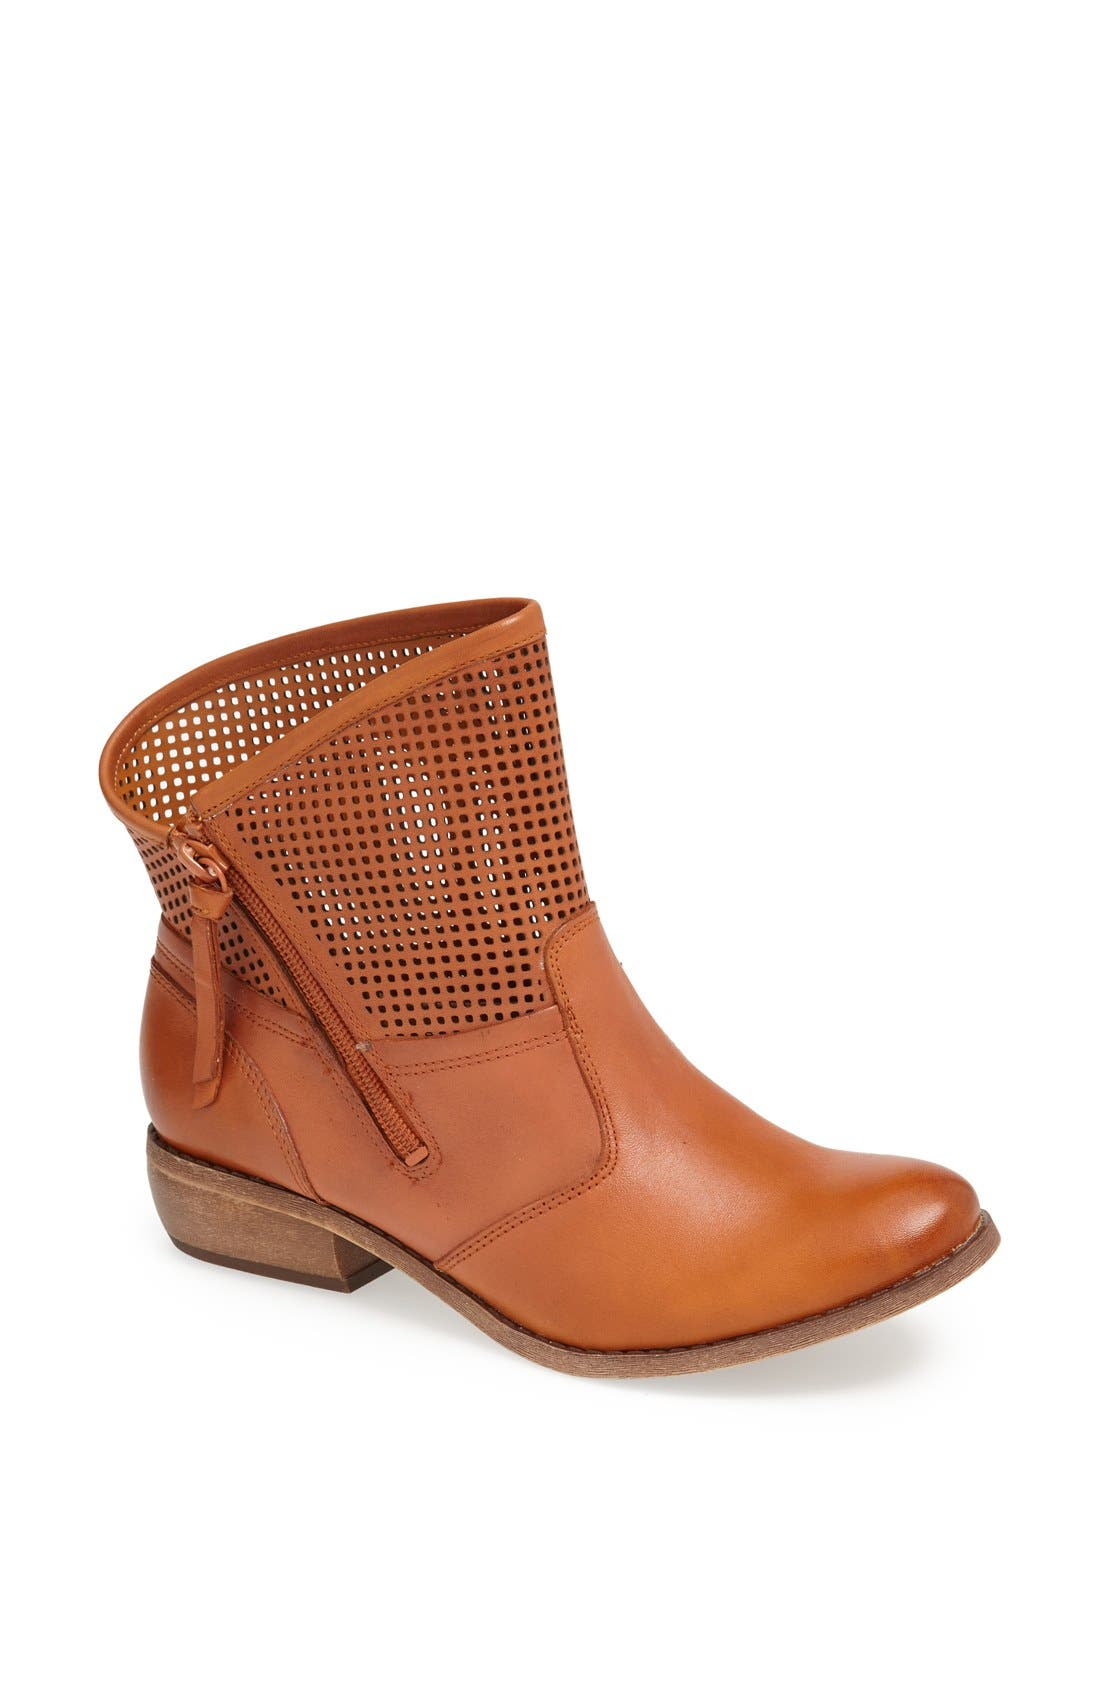 Alternate Image 1 Selected - Fergie 'Mantra' Boot